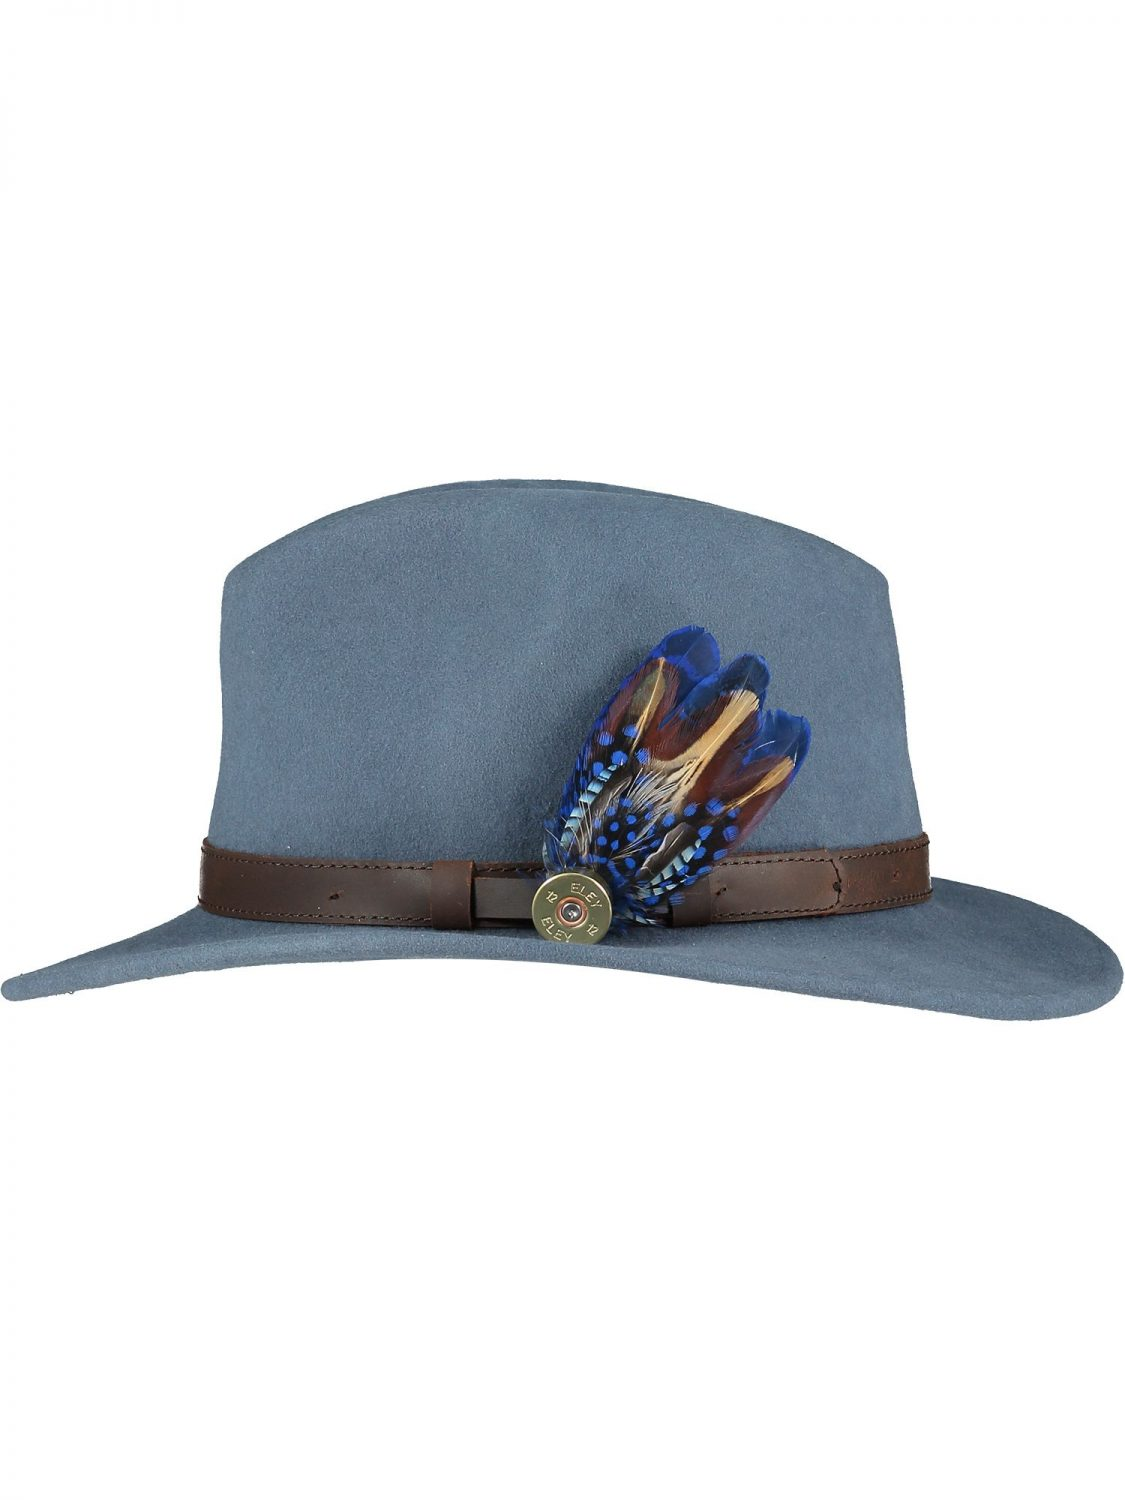 Medium Navy Pin and Hat